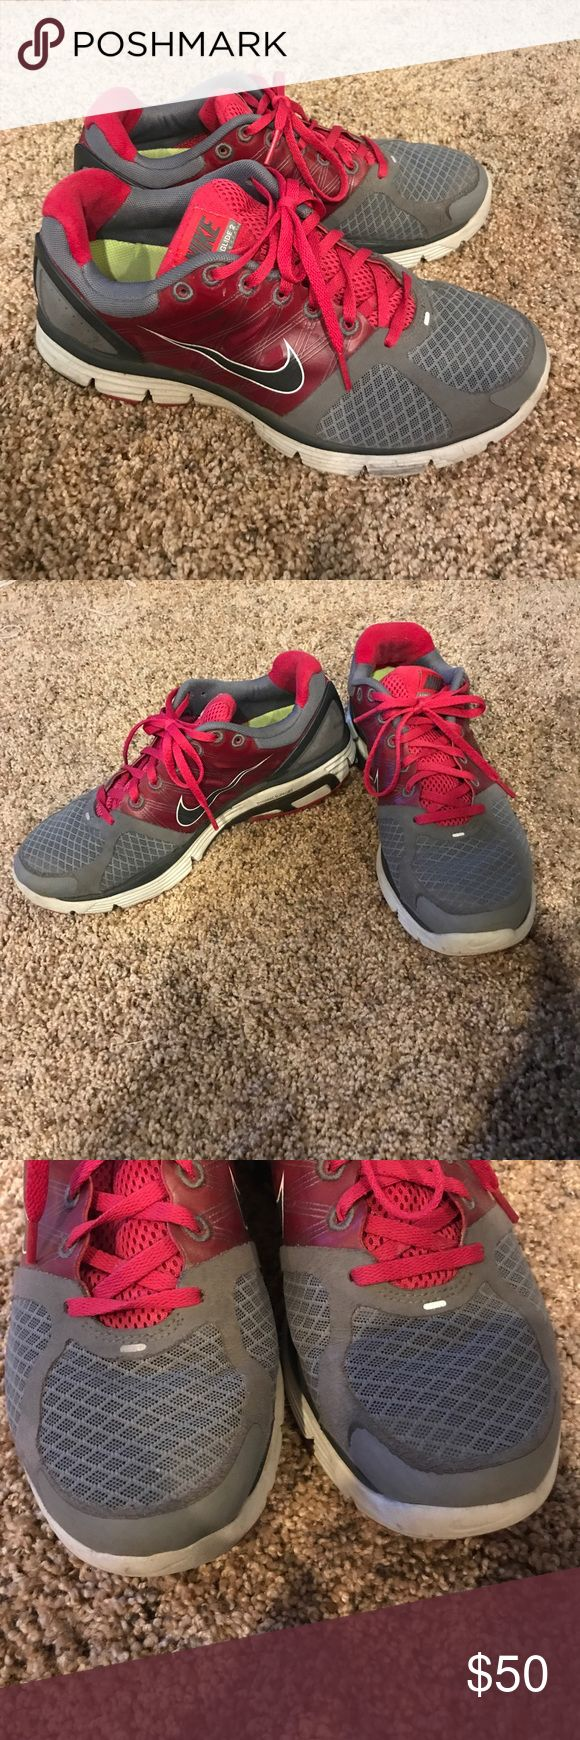 Gray and pink Nike tennis shoes Gray and pink Nike Lunarglide 2 tennis shoes. Gently worn (see pics). Nike Shoes Athletic Shoes